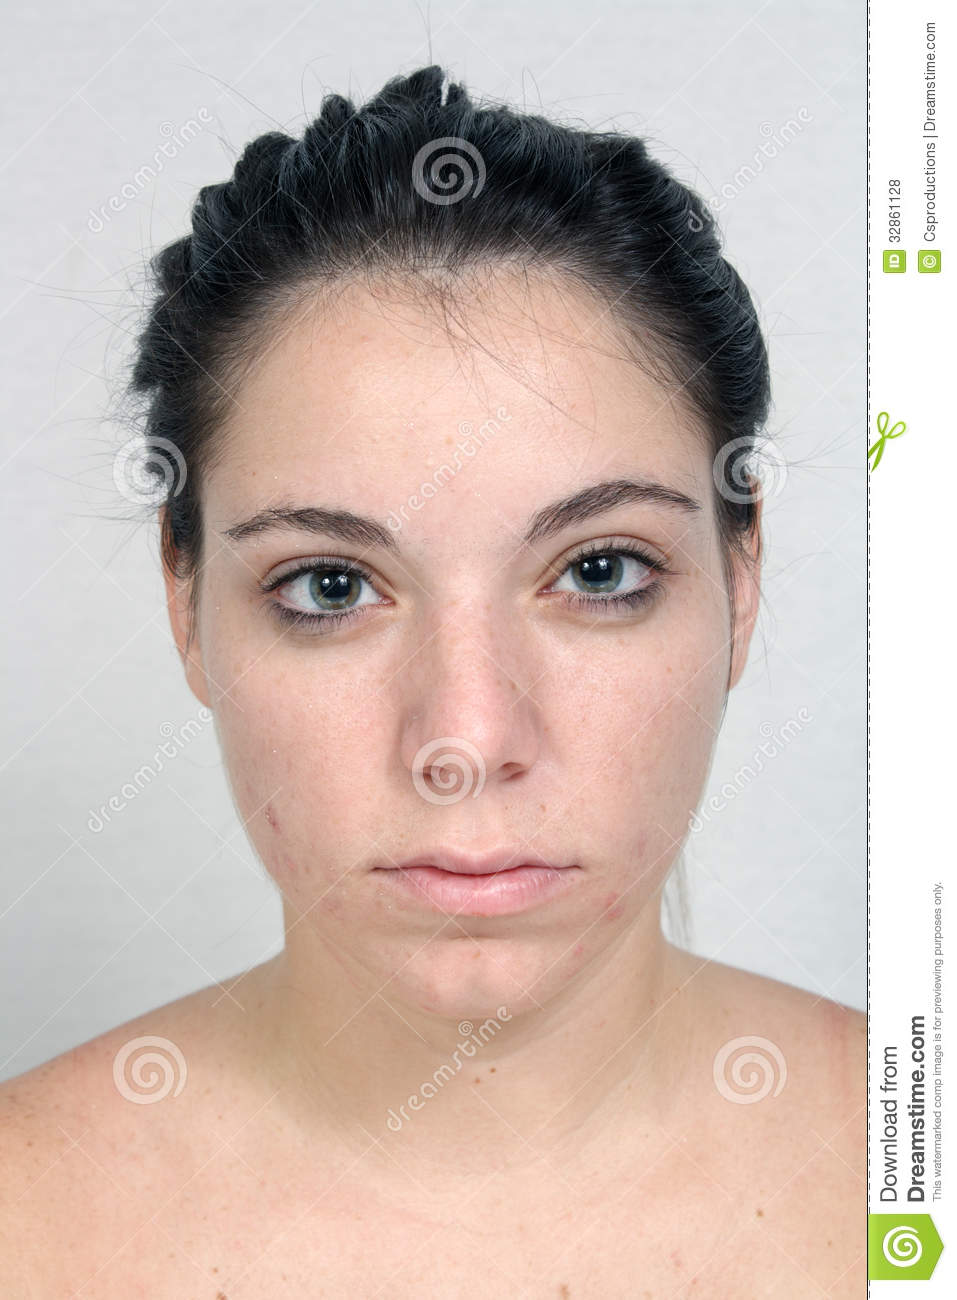 Girl With Acne (1) Royalty Free Stock Photos - Image: 32861128